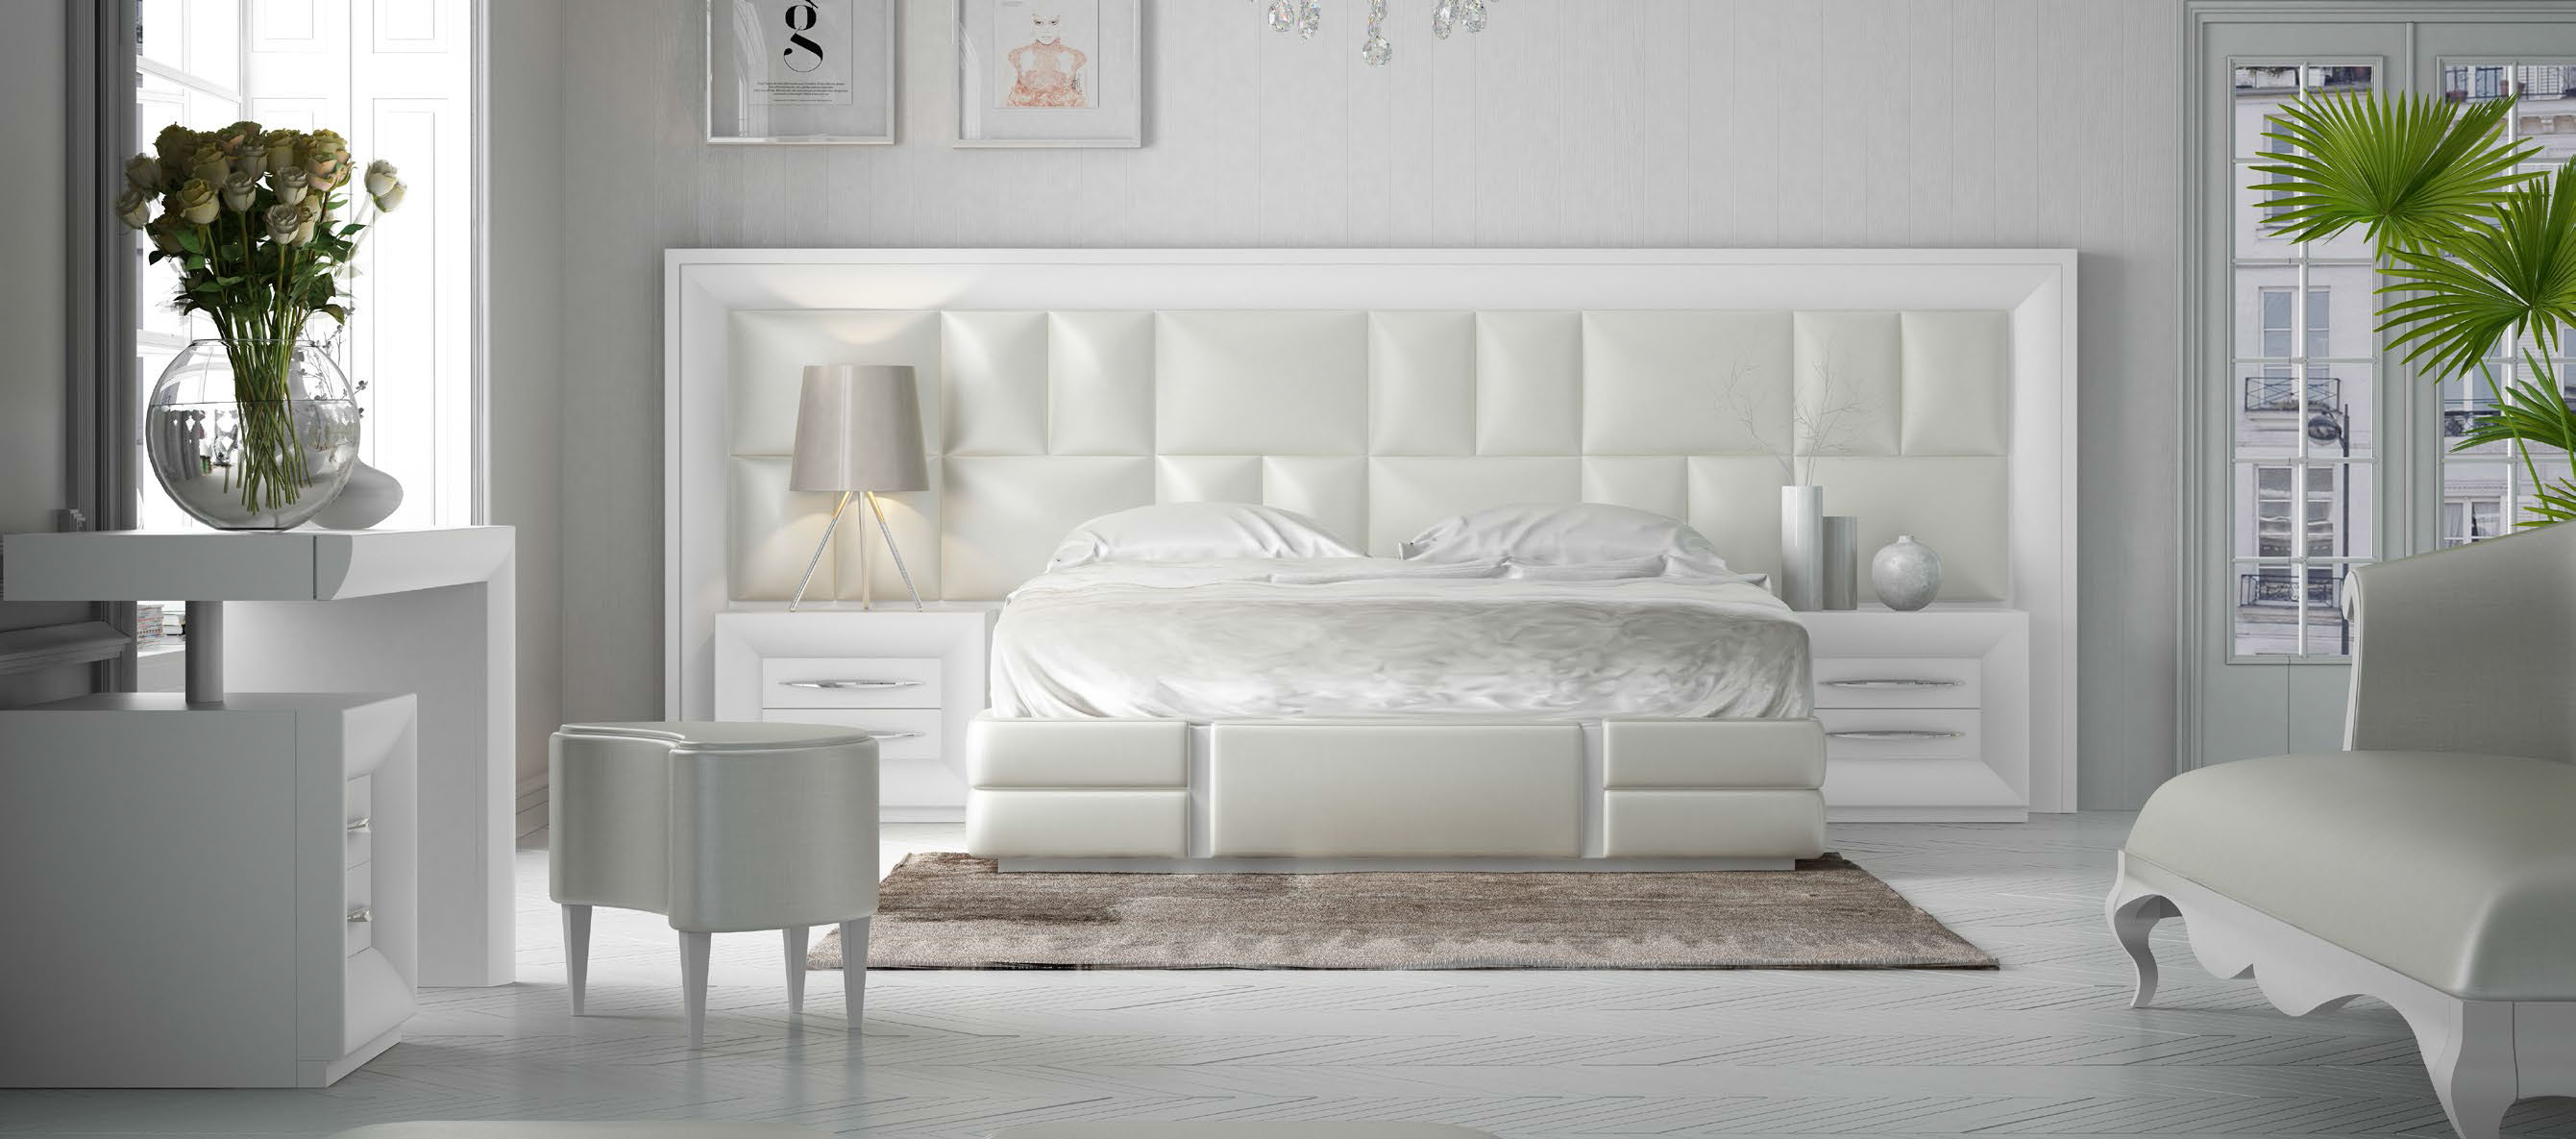 Brands Franco Furniture Bedrooms vol2, Spain DOR 114